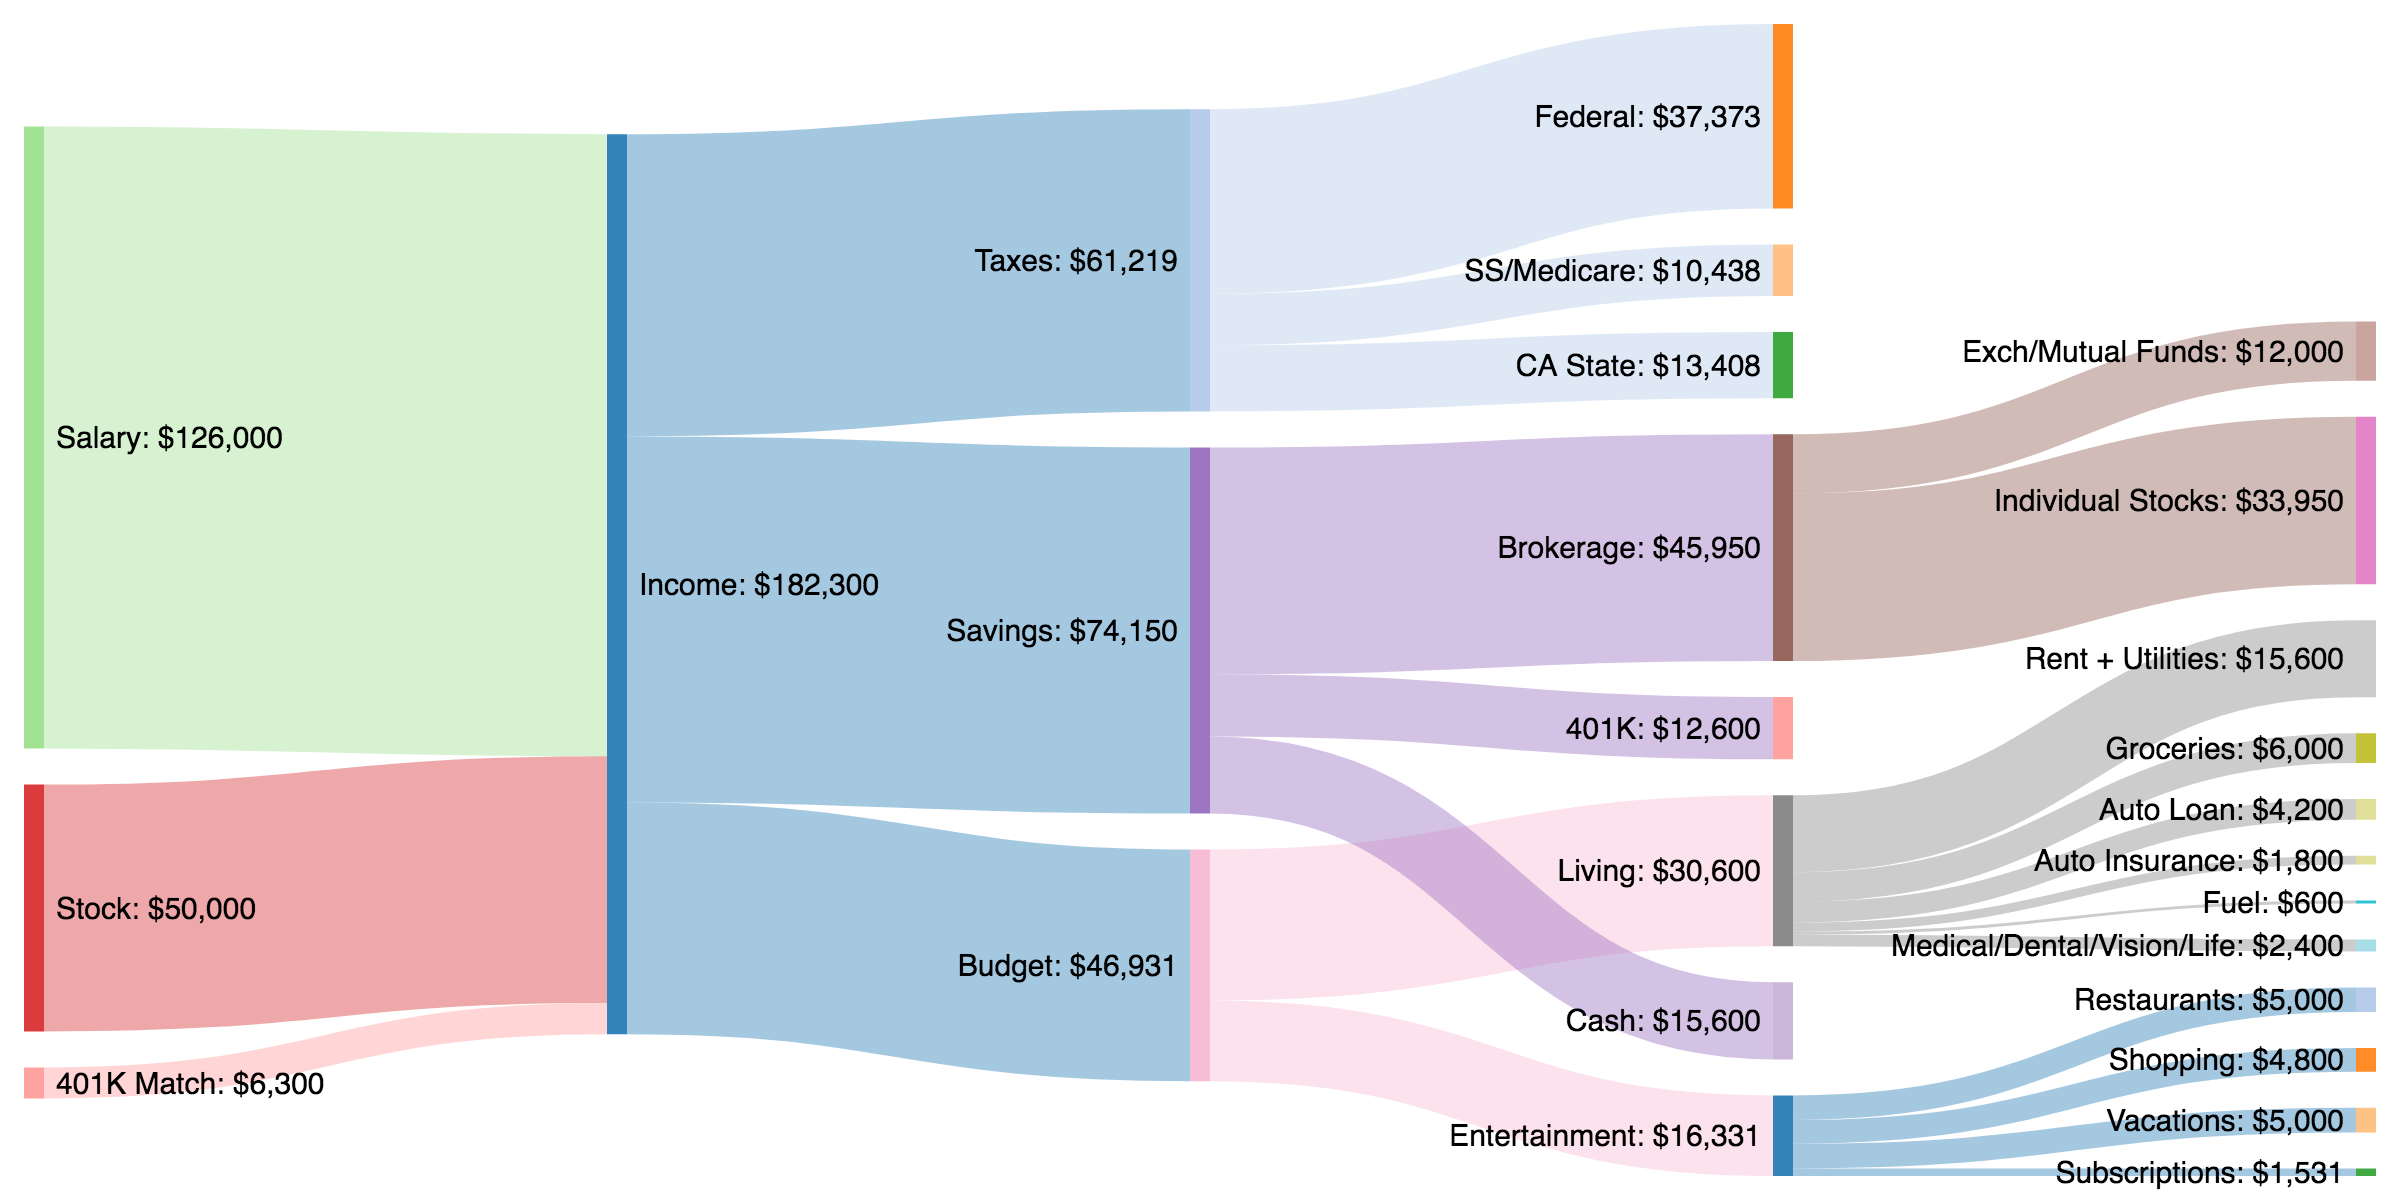 [OC] Yearly budget of ad man working remotely in Los